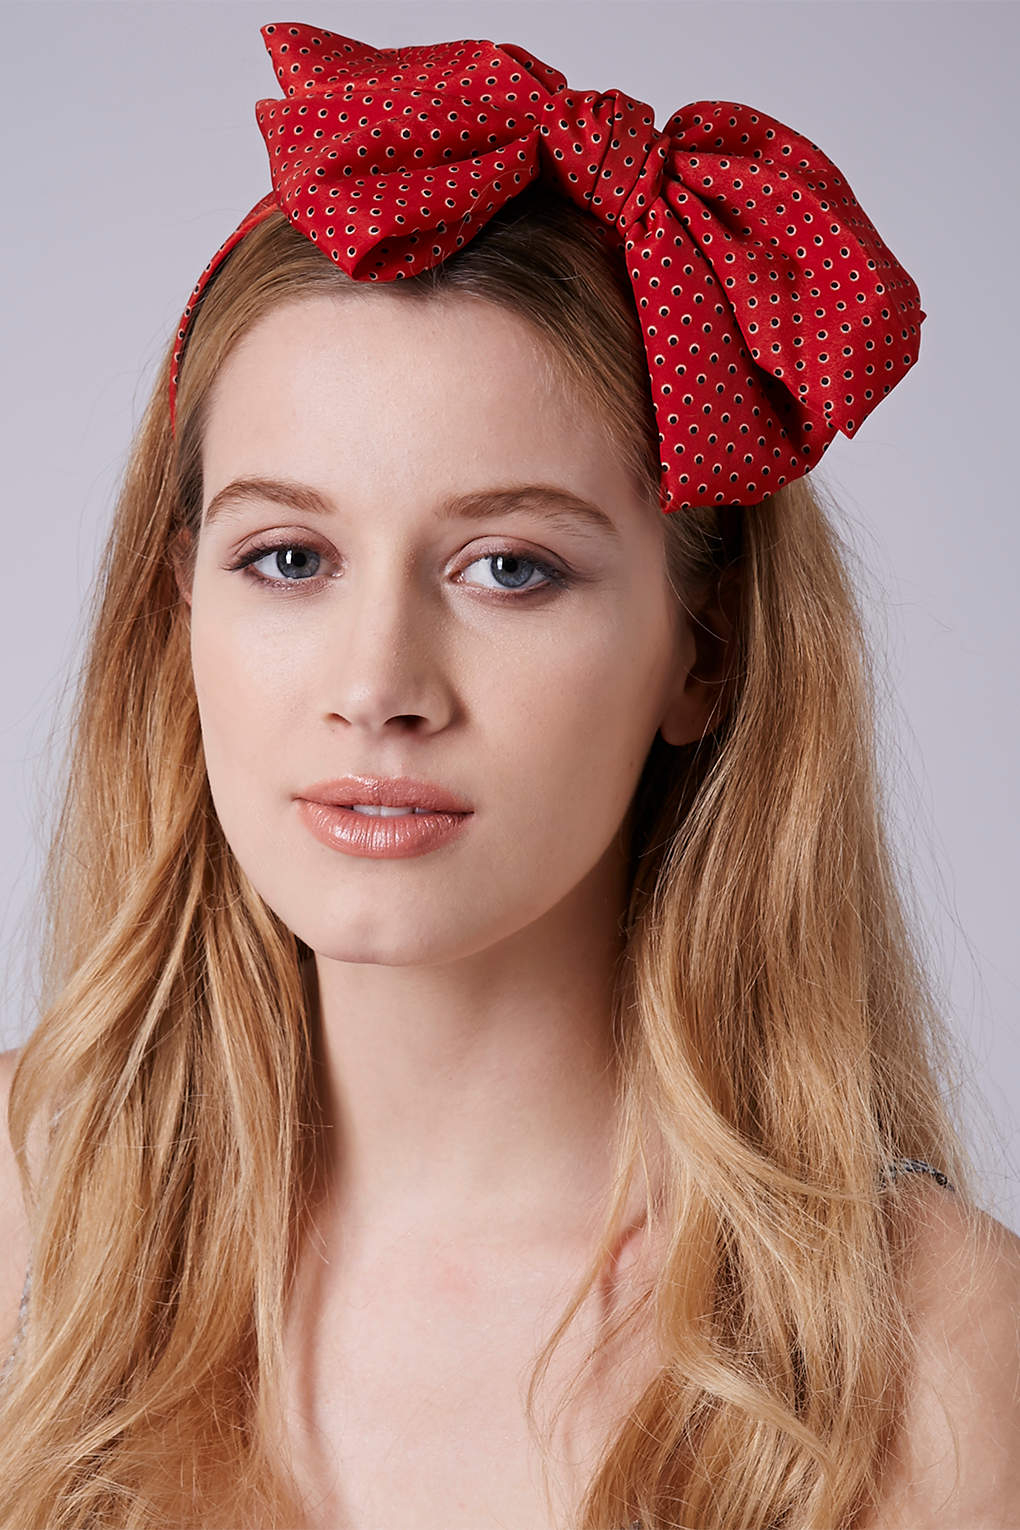 Lyst - TOPSHOP Oversize Floppy Bow Headband in Red bb539088fa4